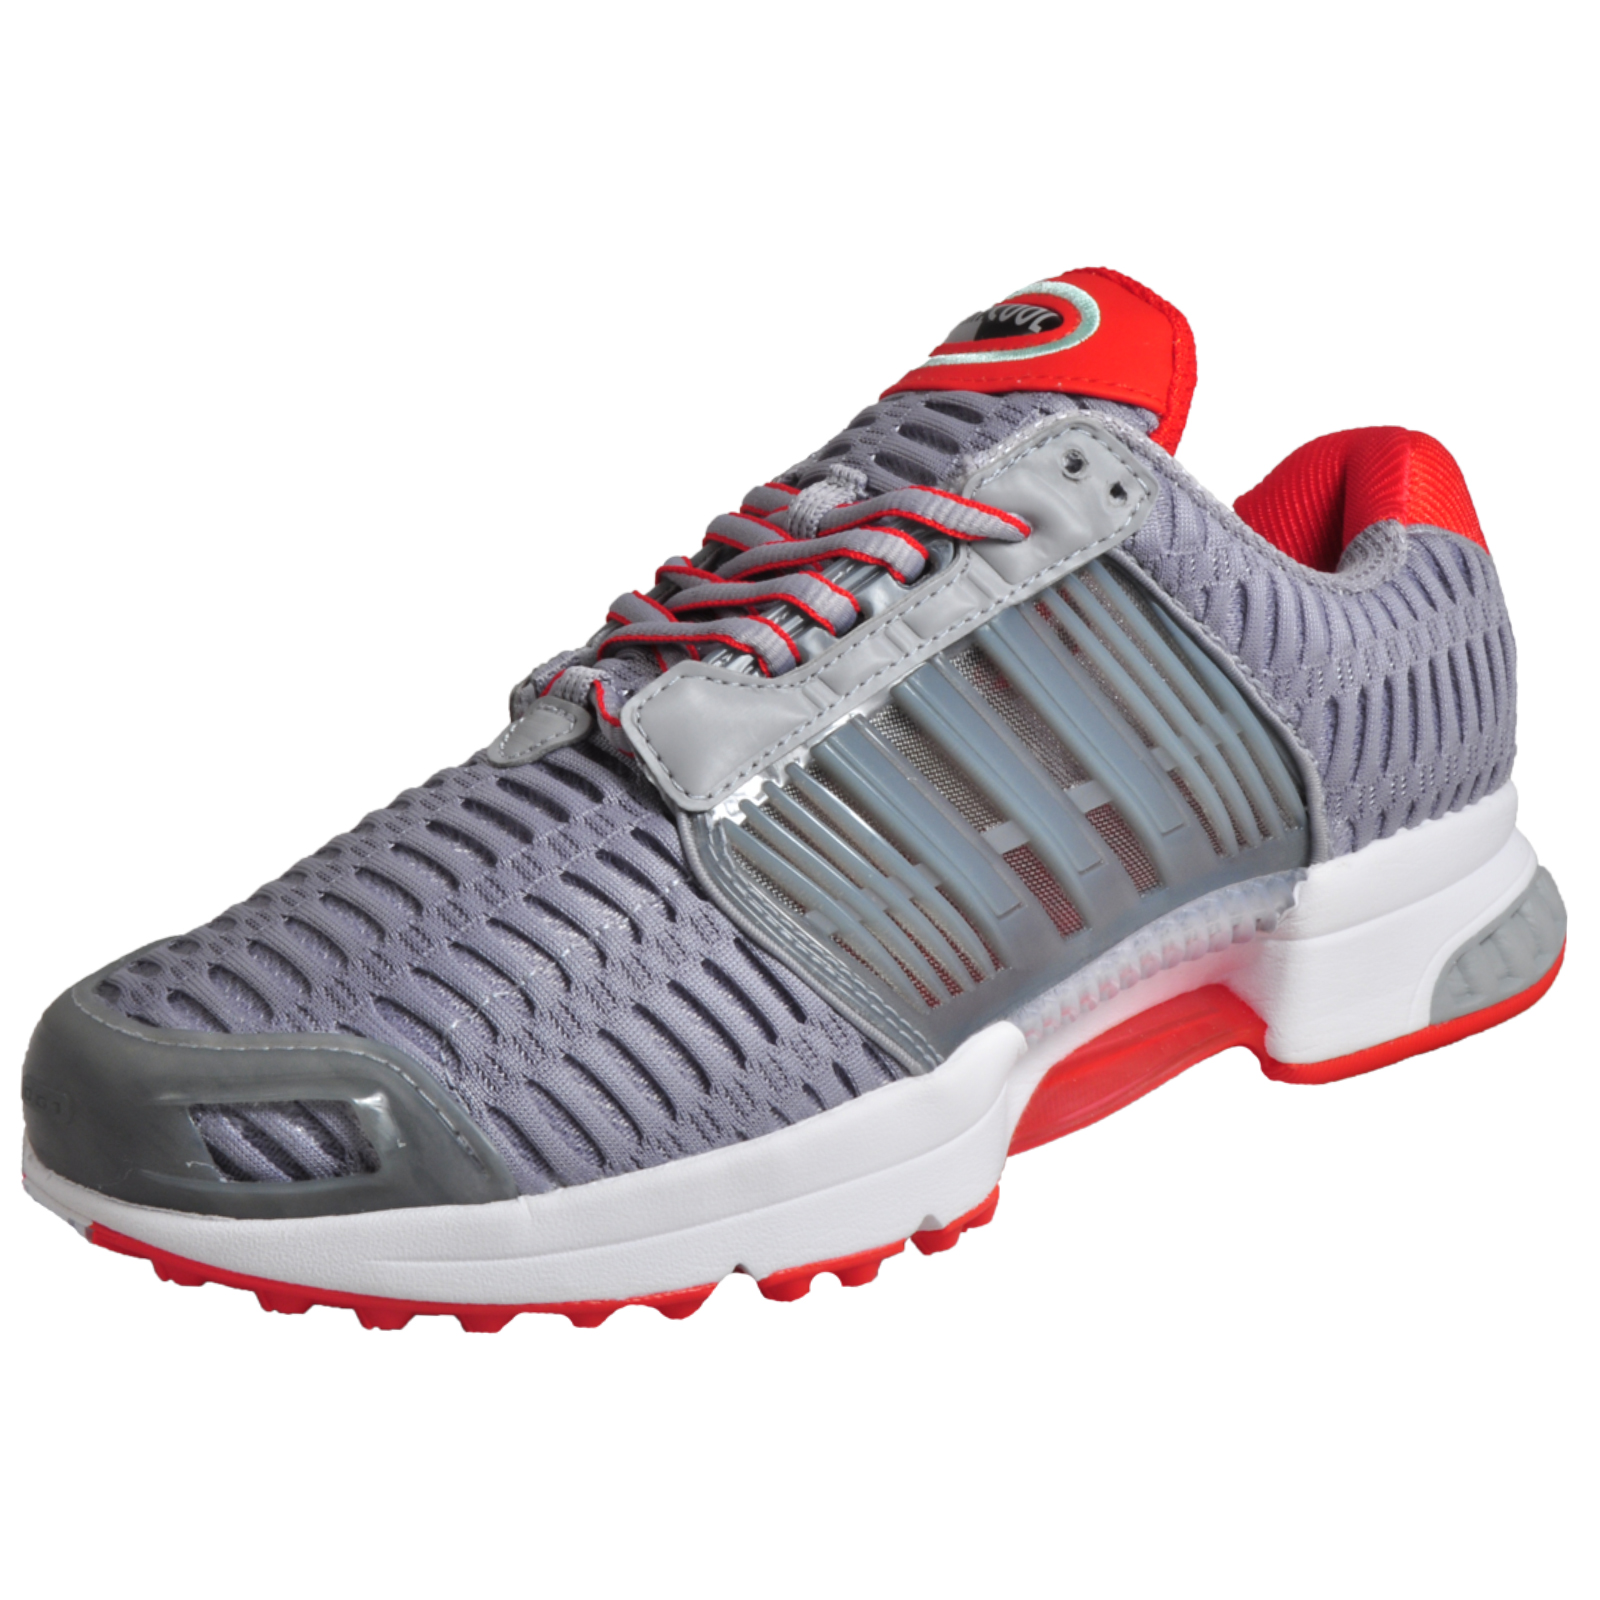 50a2b36819a ... order adidas climacool 1 mens running shoe fashion fitness gym fashion  trainers grey d5b5a 480c6 netherlands tênis adidas cc ride m masculino ...